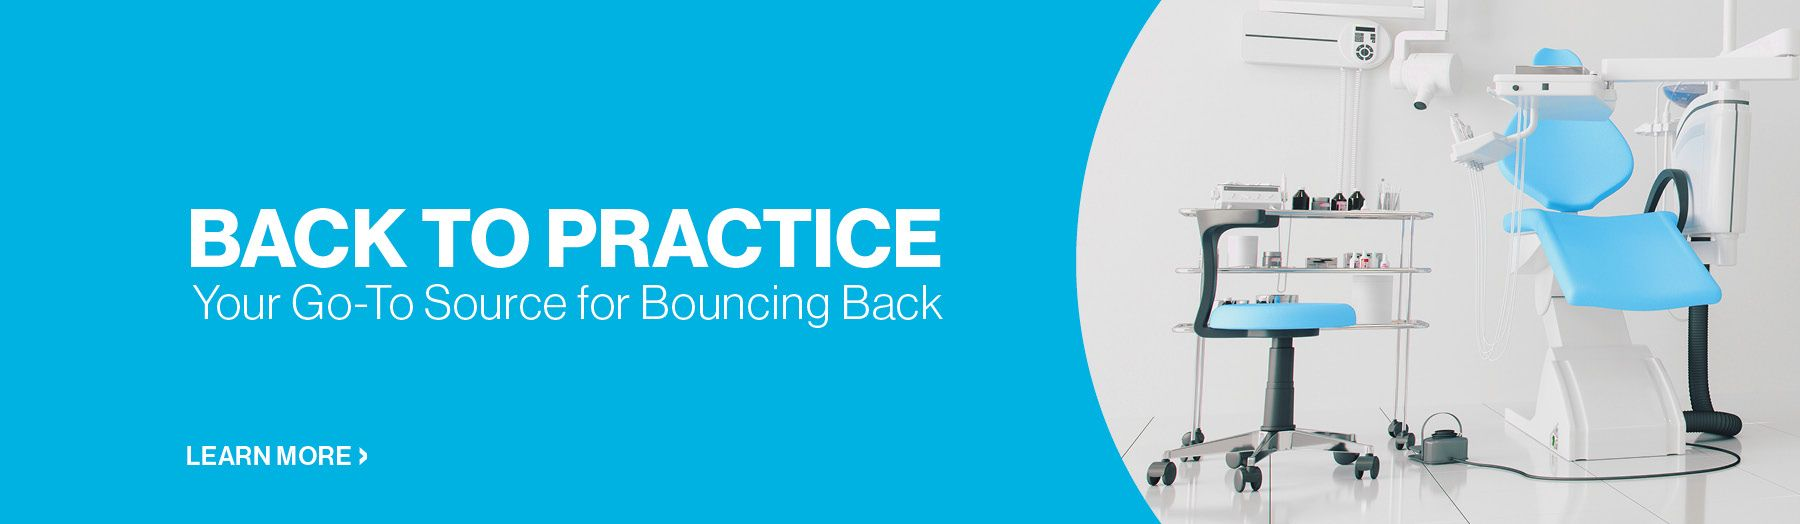 Back to Practice: Your Go-To Source for Bouncing Back